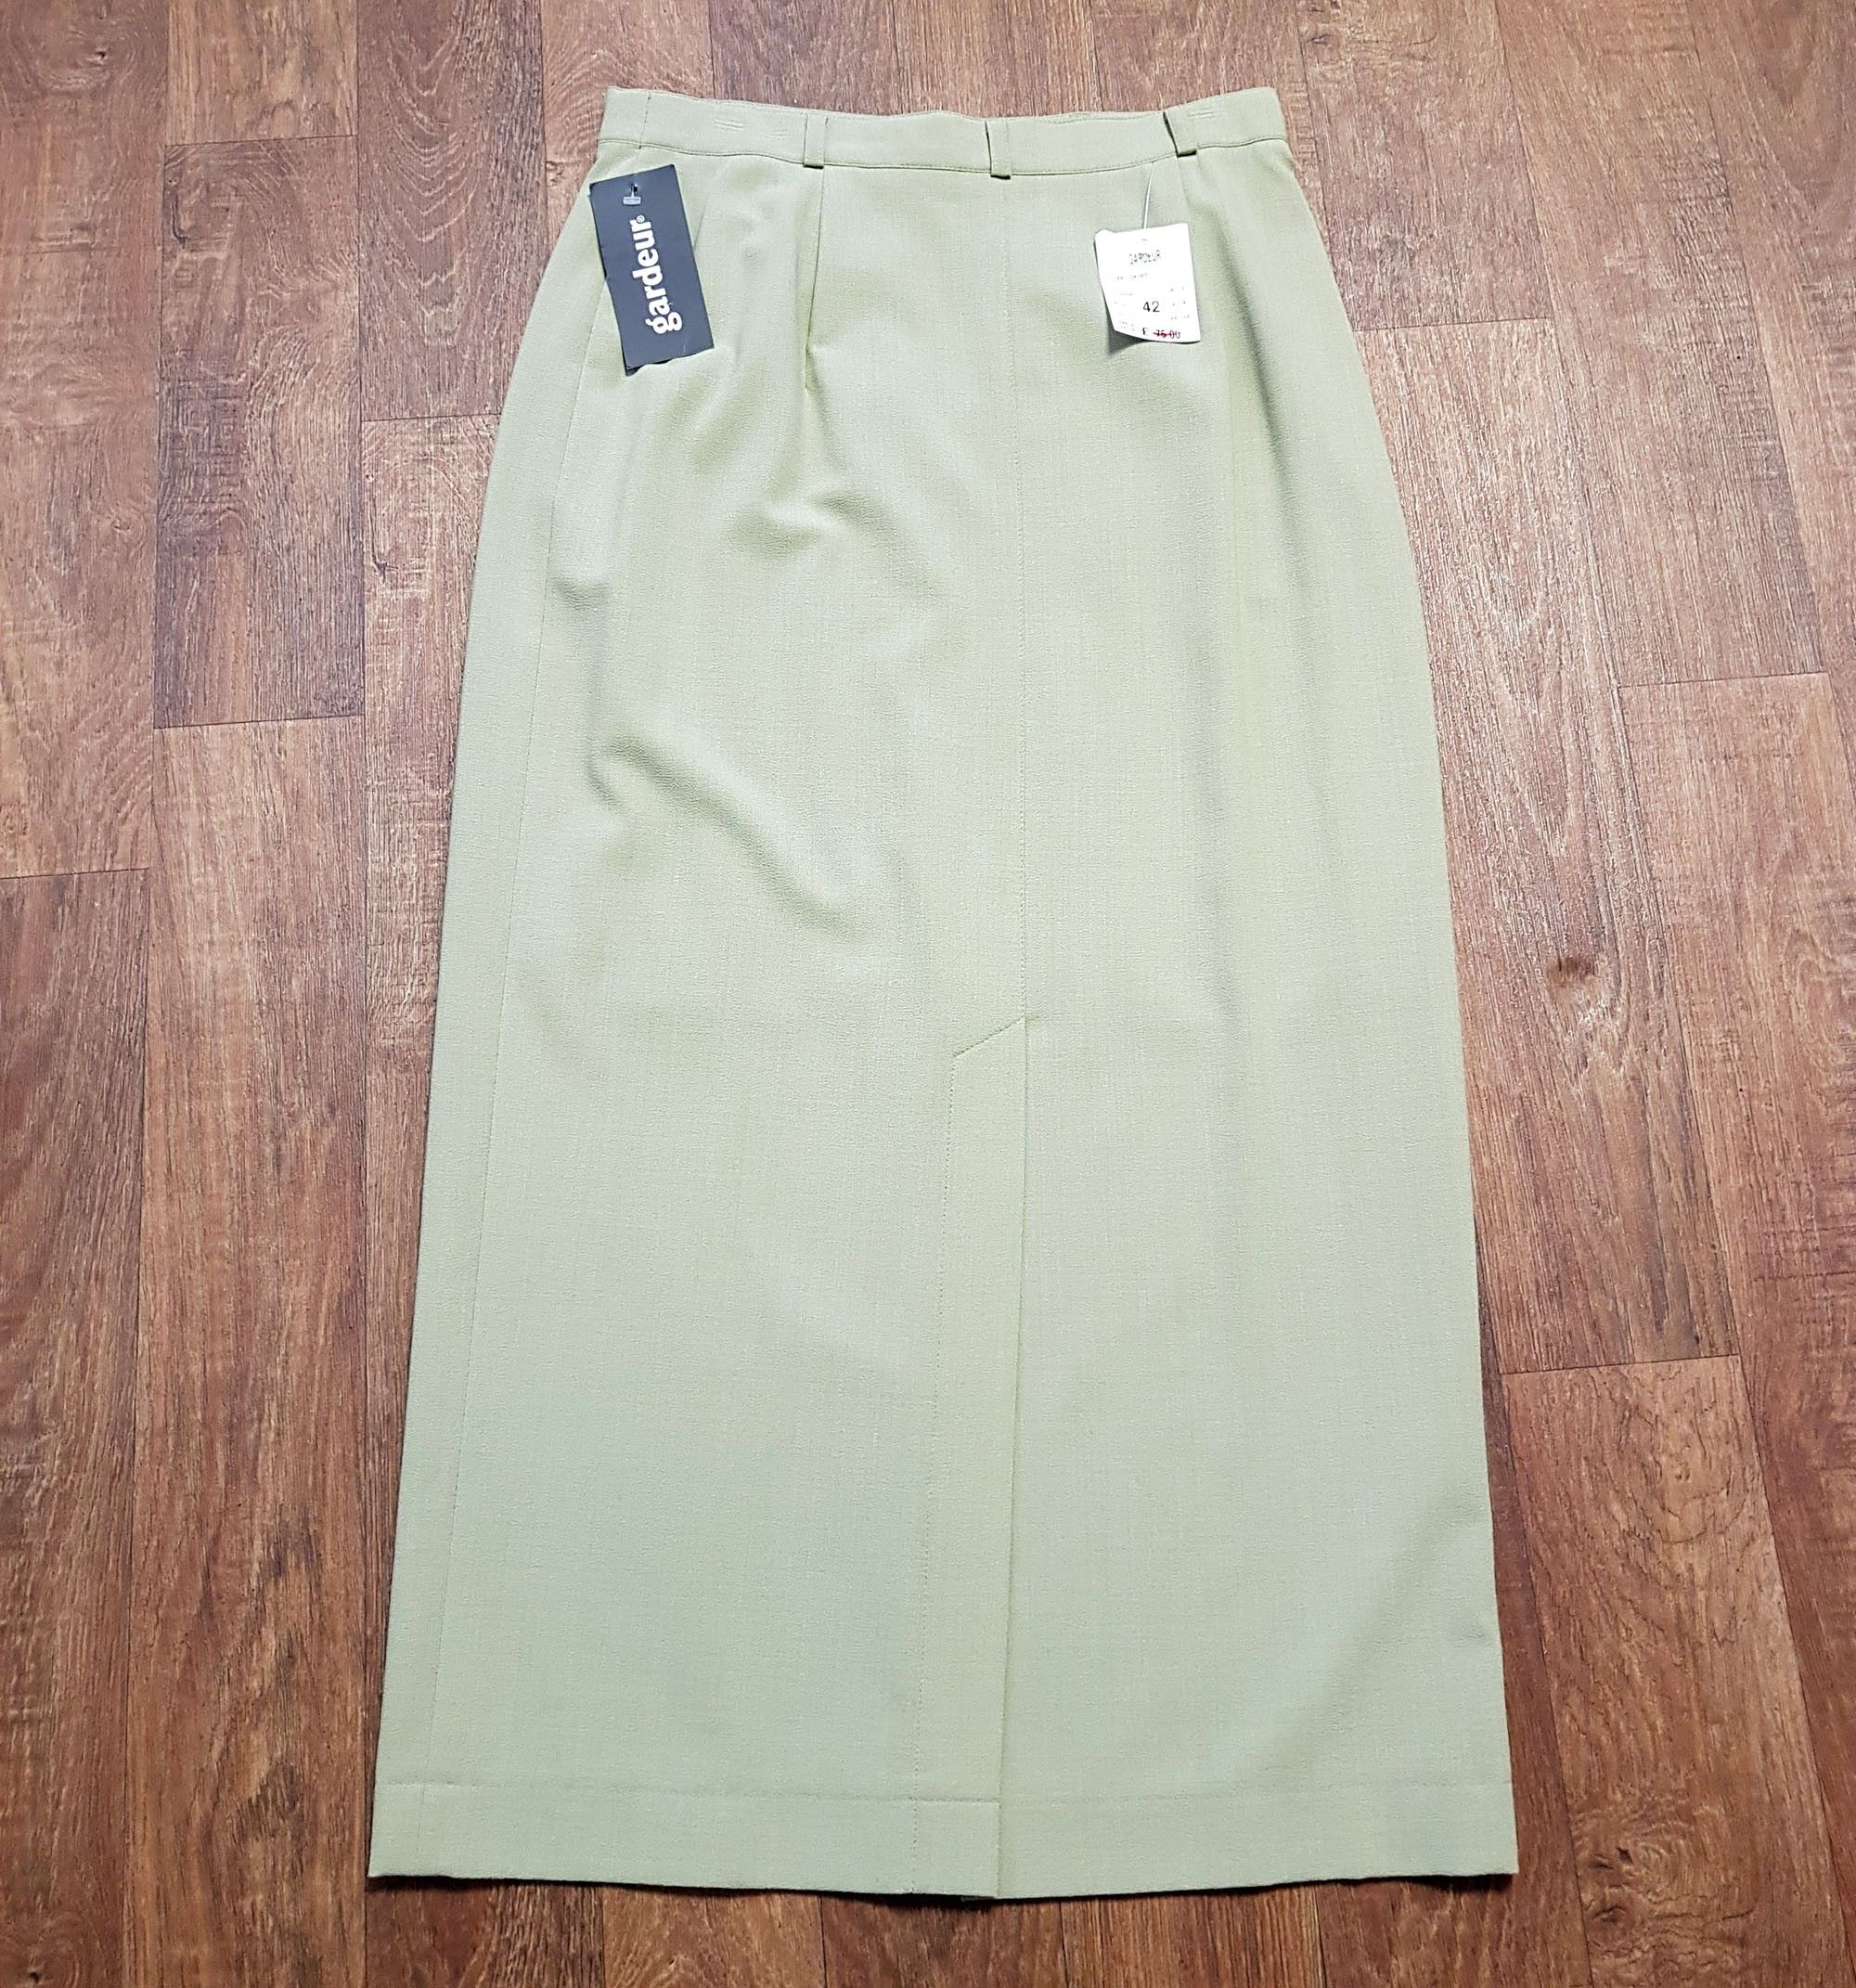 1990s Vintage Green Long Pencil Skirt with Tags UK Size 14